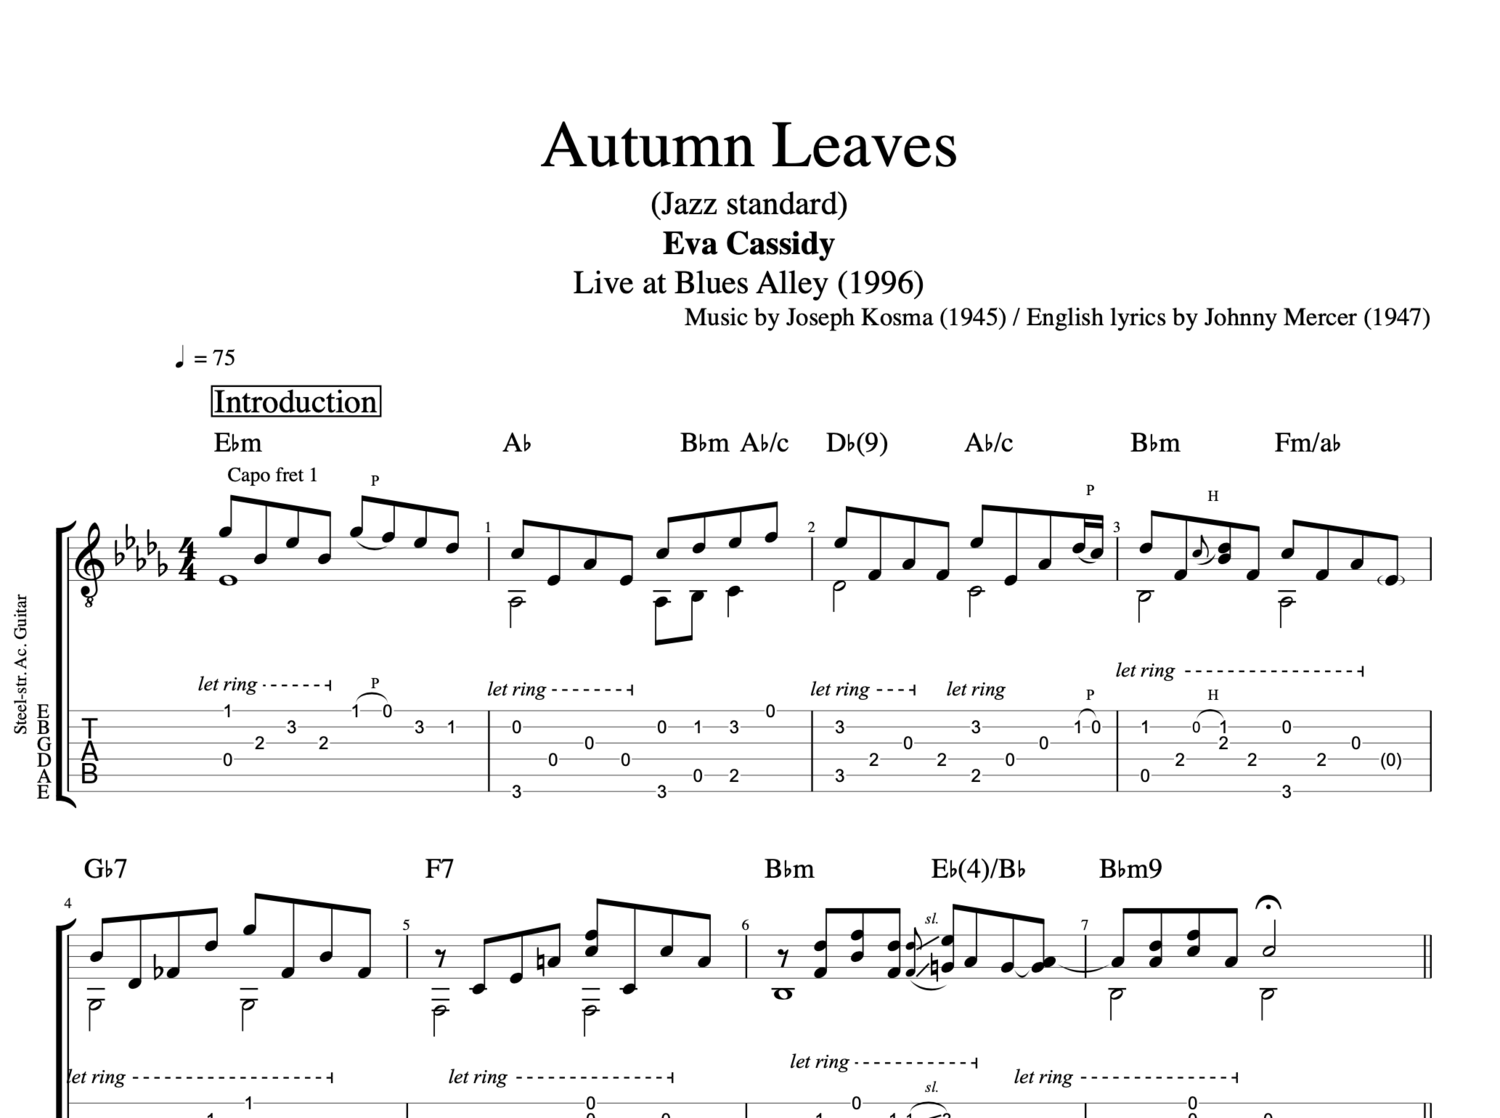 Johnny guitar chords image collections guitar chords examples autumn leaves by eva cassidy guitar piano tab chords autumn leaves by eva cassidy guitar piano hexwebz Gallery